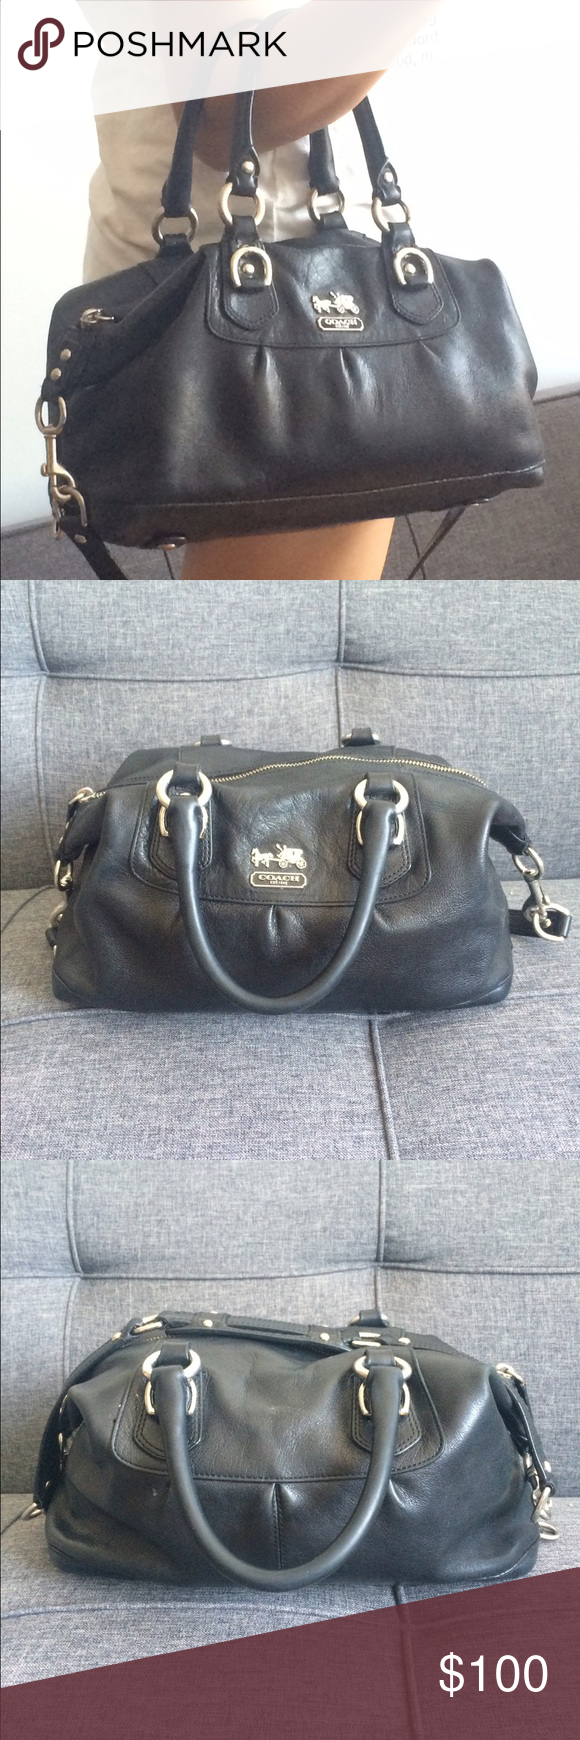 Coach Madison Sabrina Leather Satchel Black leather satchel with silver hardware. Stains on inside lining but leather is in great shape. Comes with long shoulder strap. 12x9x6. Coach Bags Satchels